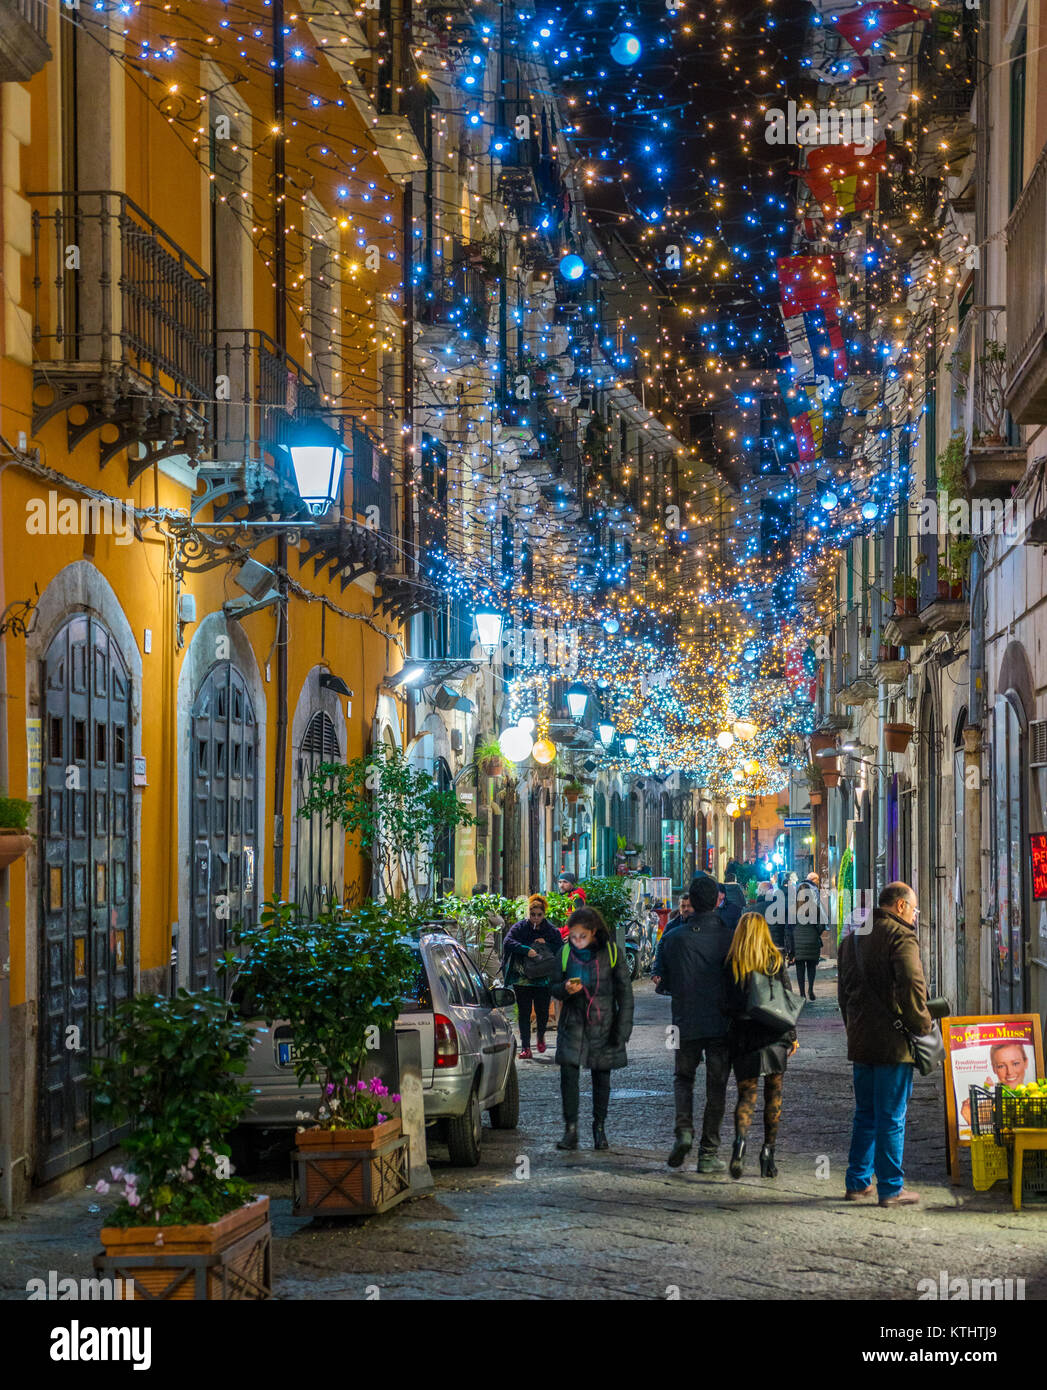 "The amazing ""Luci d'Artista"" (artist lights) in Salerno during Christmas time, Campania, Italy. Stock Photo"